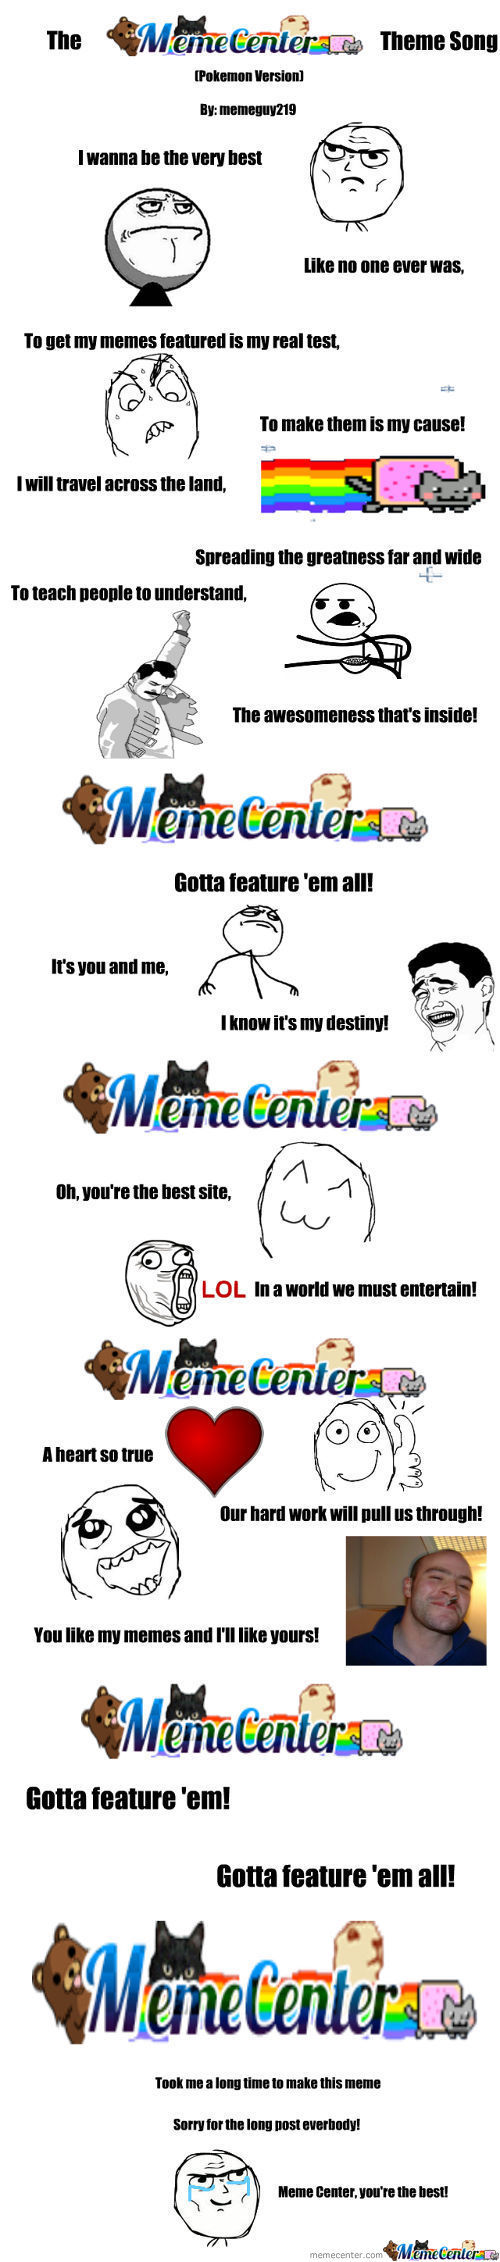 Memecenter Song